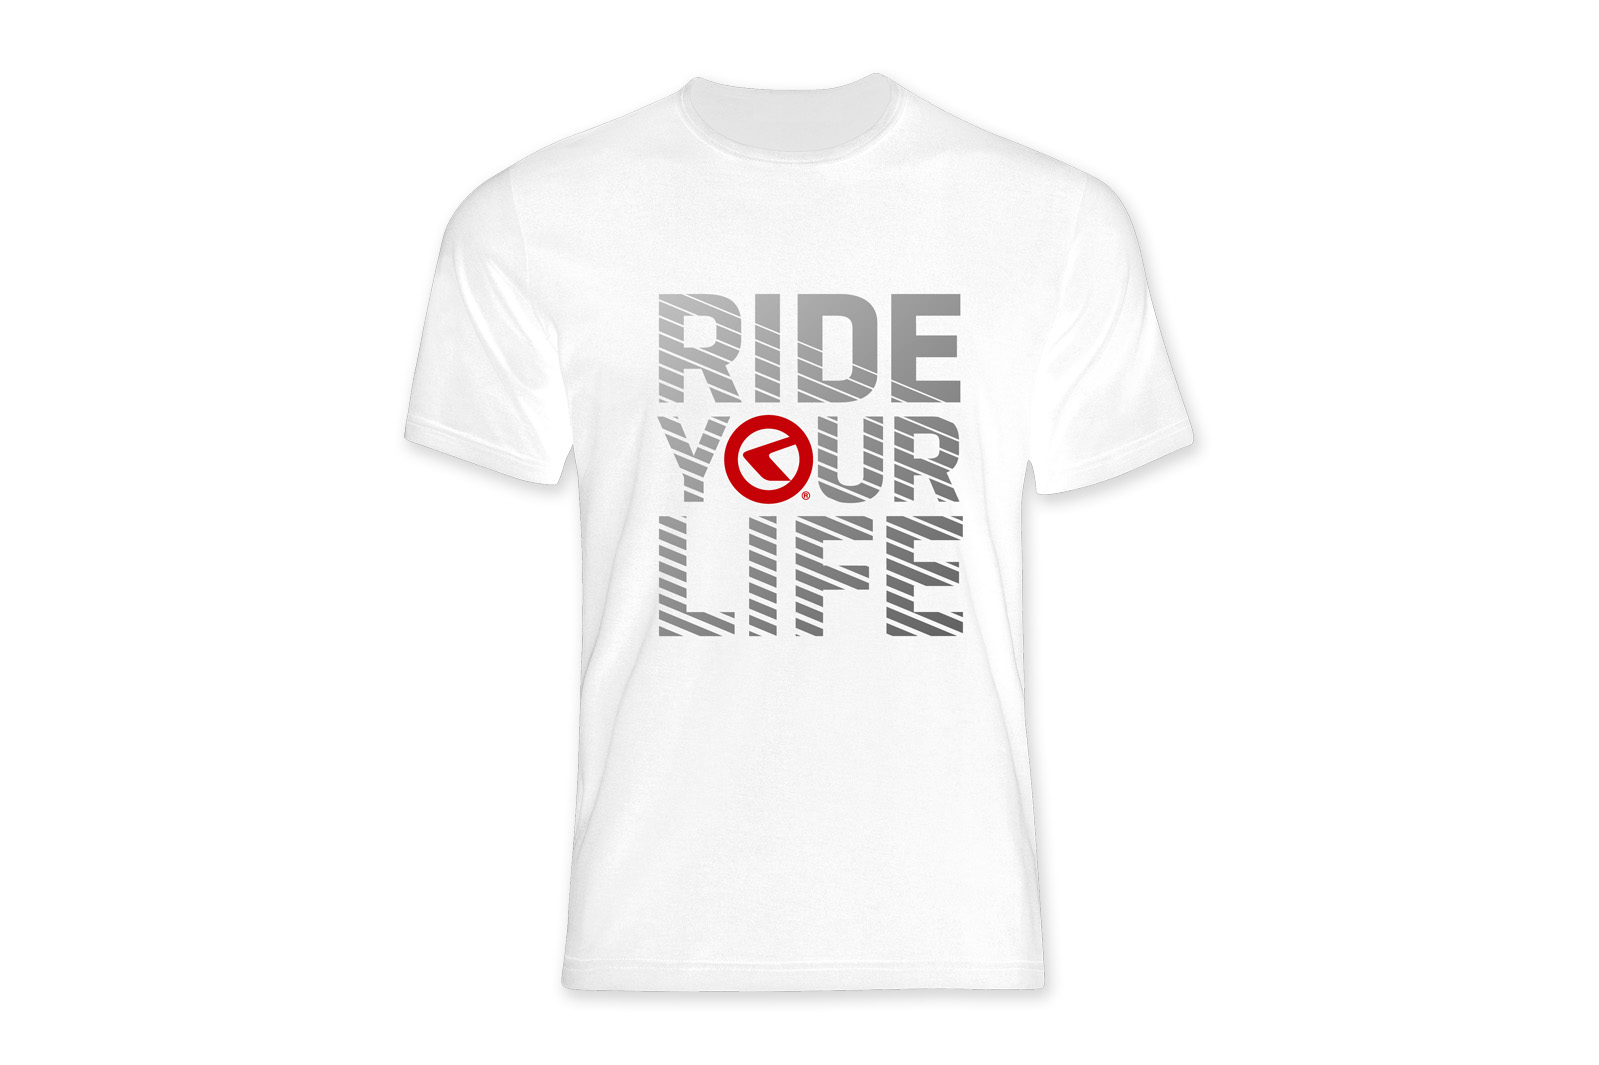 T-Shirt KELLYS RIDE YOUR LIFE kurzarm white - L - Fahrradhaus Haske